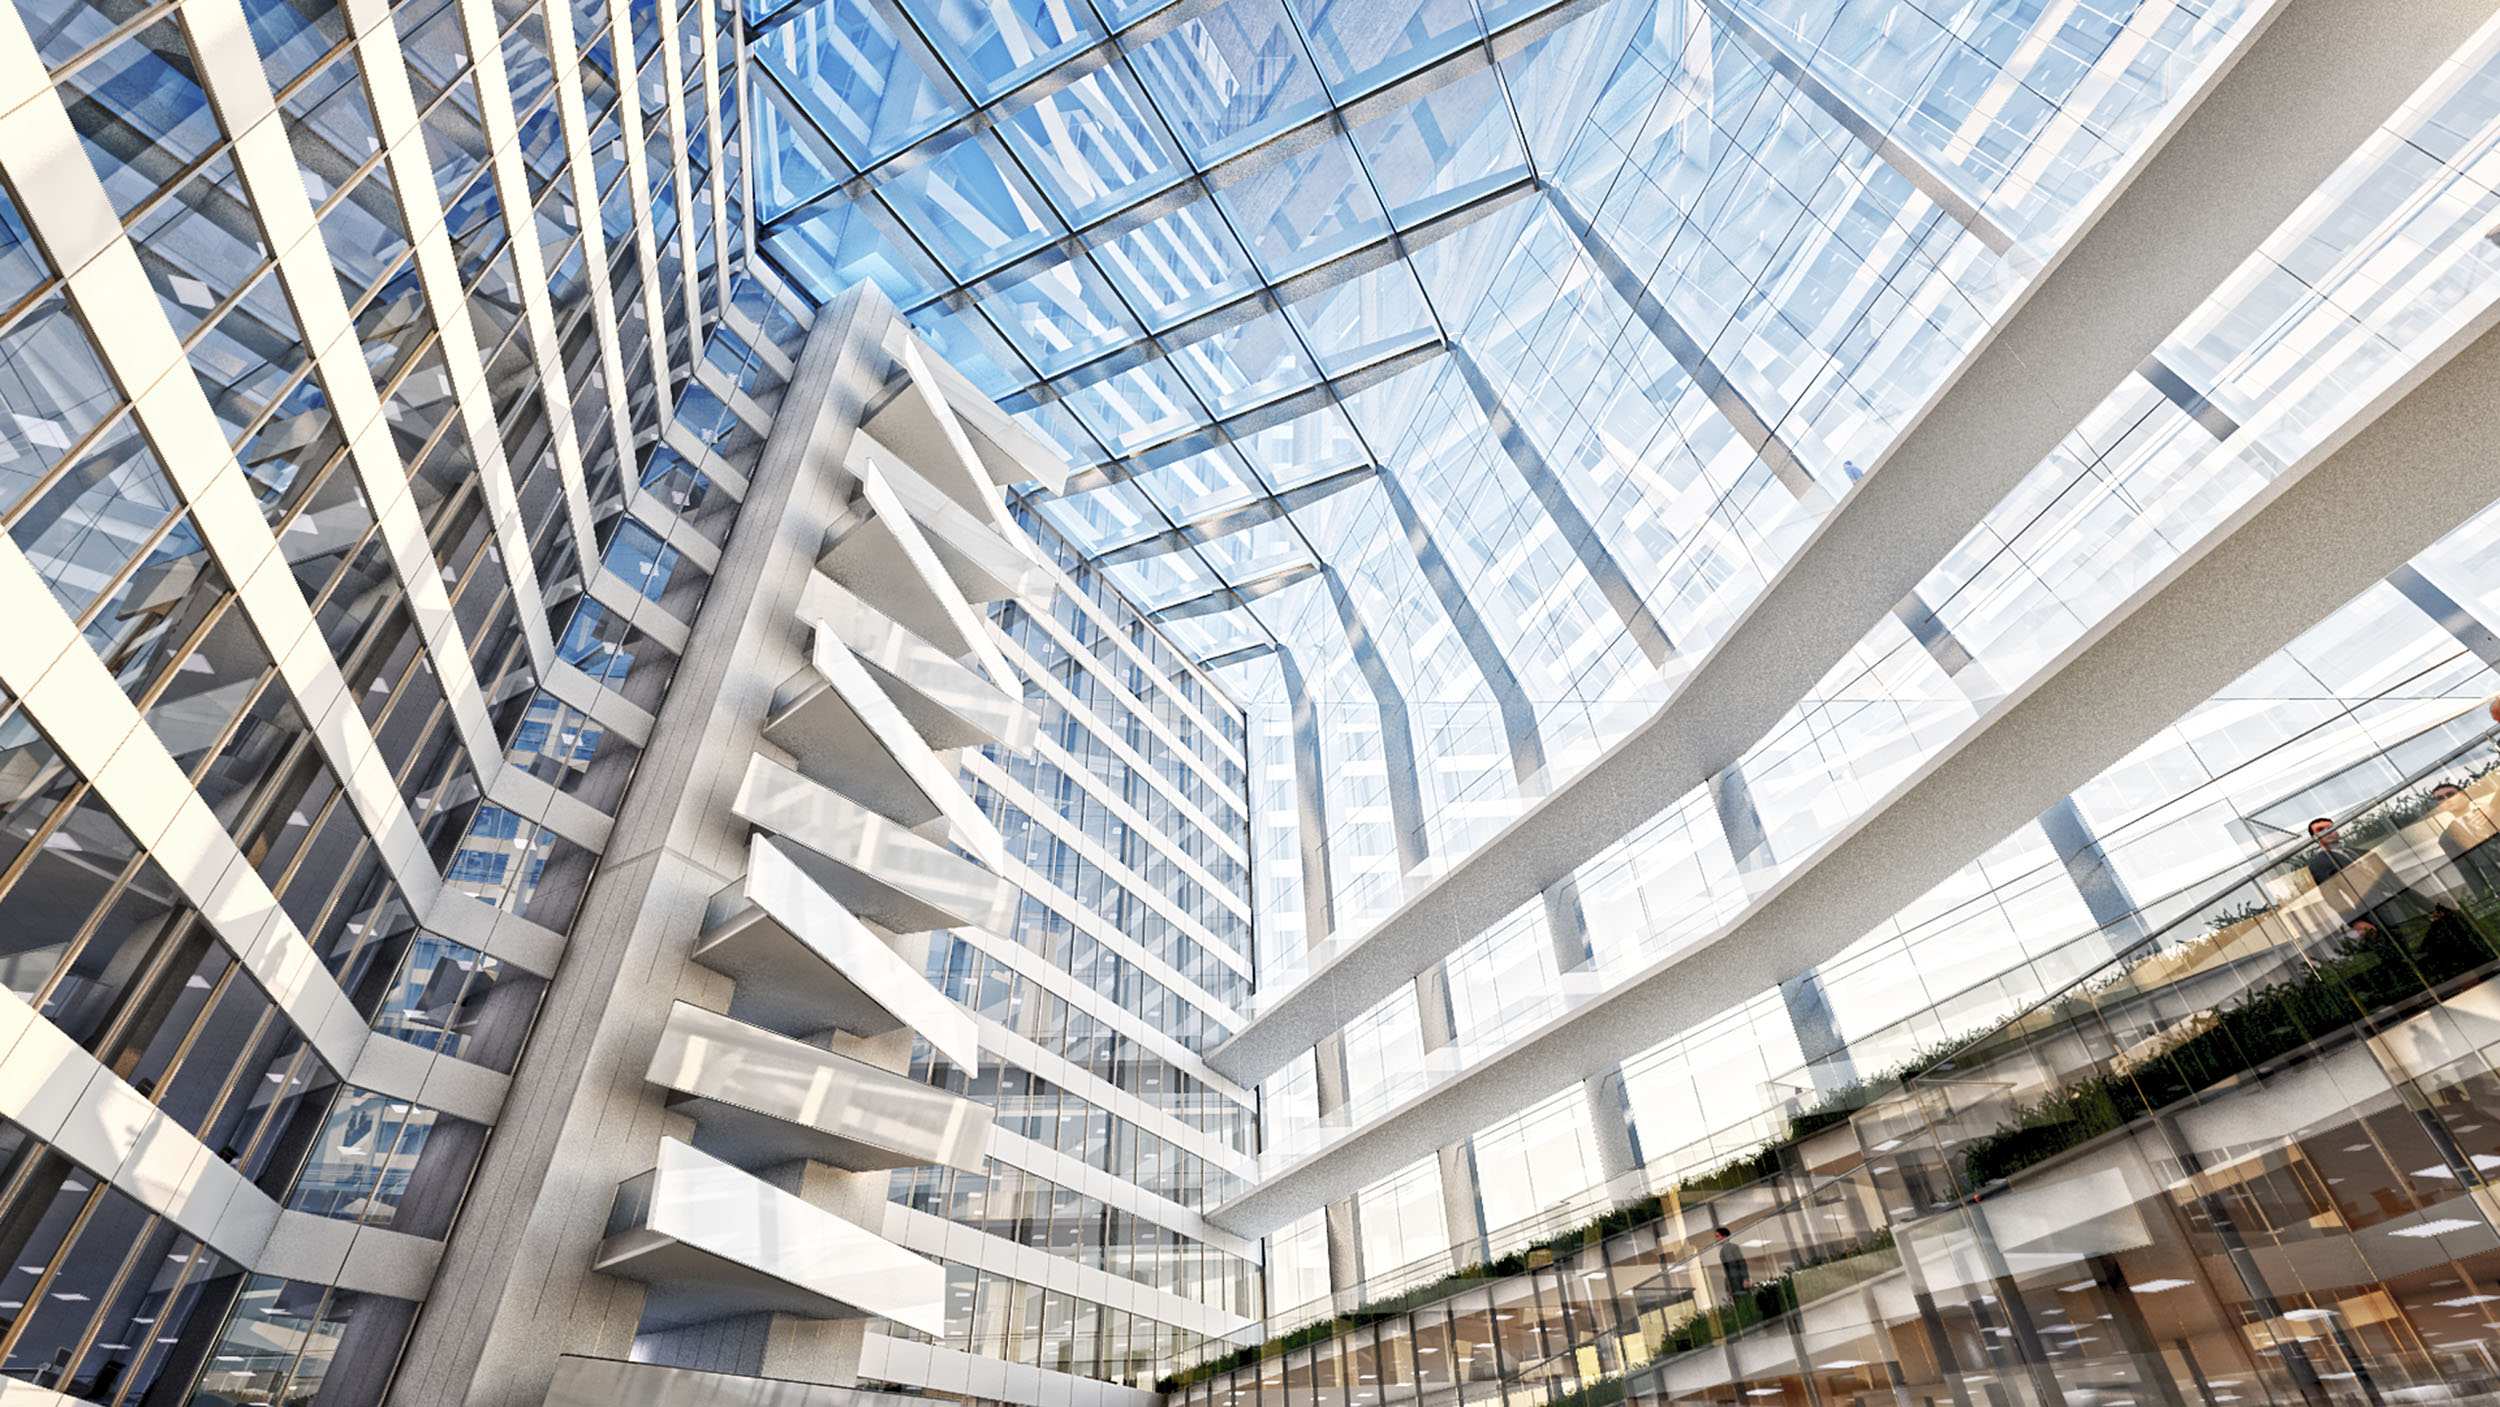 A Look Inside The Smartest Building In The World Enlighted